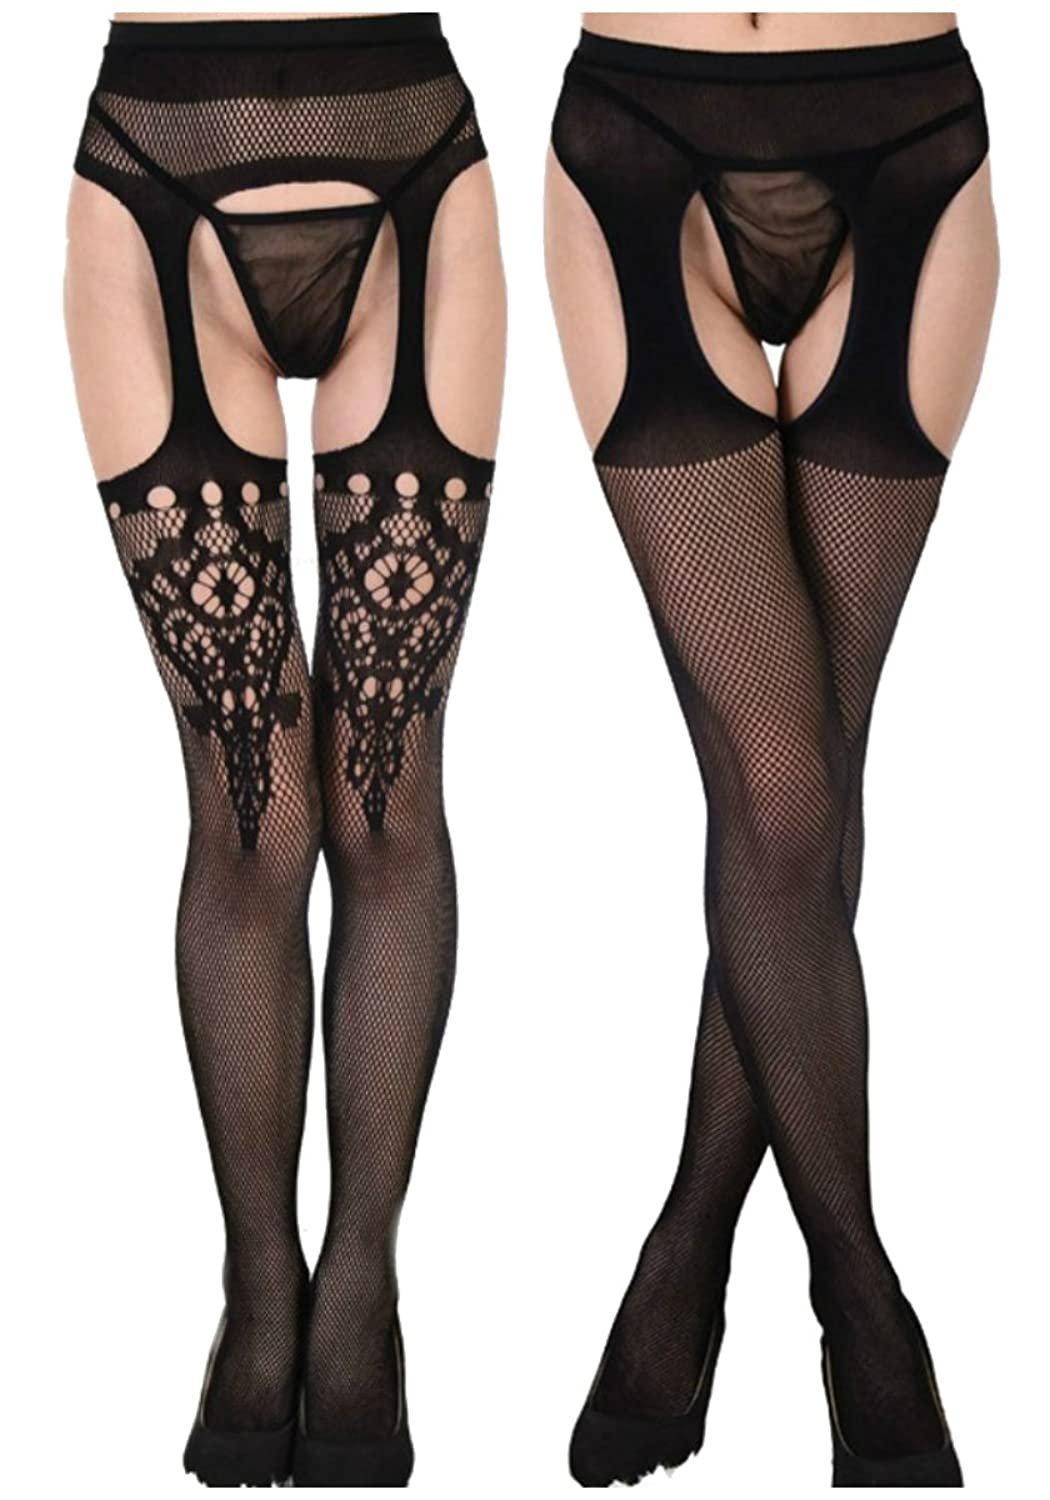 923e53cb3 Elastic closure. Package Includes  Fishnet Tights One size fits most US  size 4-12(Waist 11